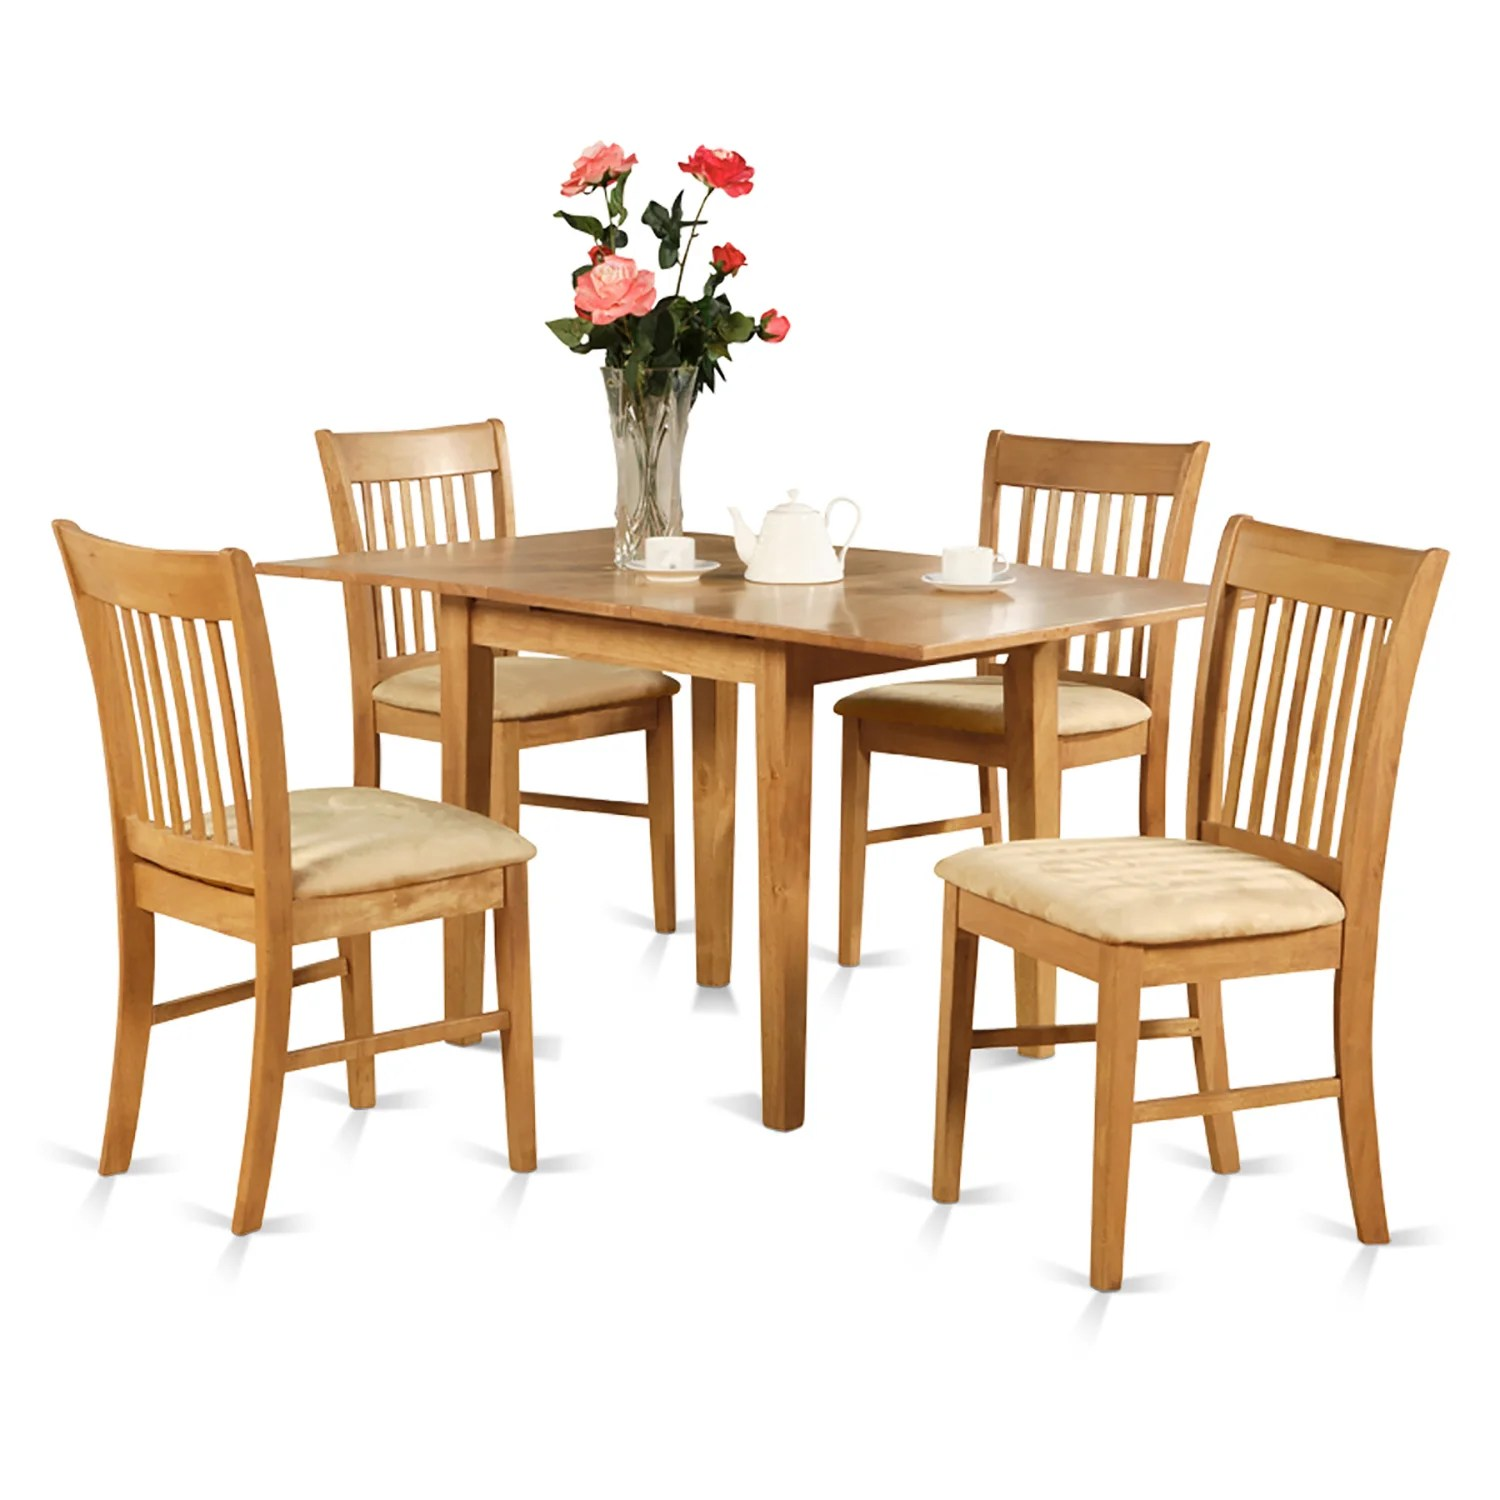 oak kitchen table sets delta chrome faucet shop dinette with 12 inch leaf and 6 chairs 7 piece dining set free shipping today overstock com 10201182